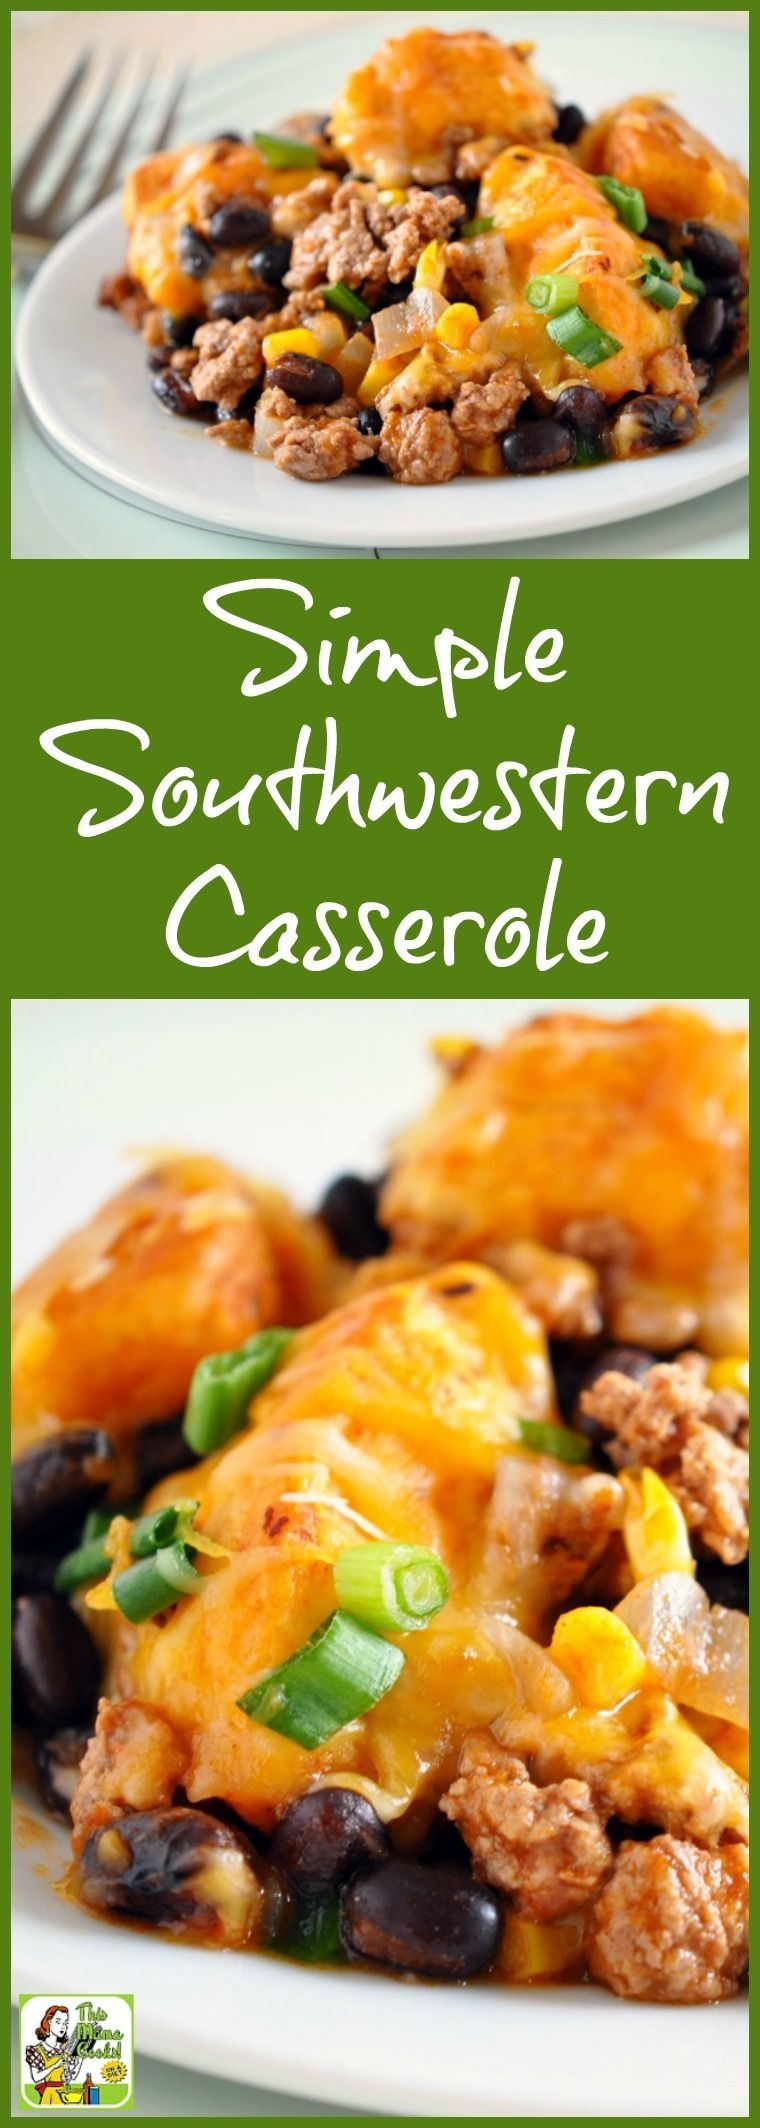 Looking for a delicious and healthy one pot recipe? Try this Simple Southwester Casserole recipe. It's the best quick and easy casserole recipe to make for weeknight dinners.